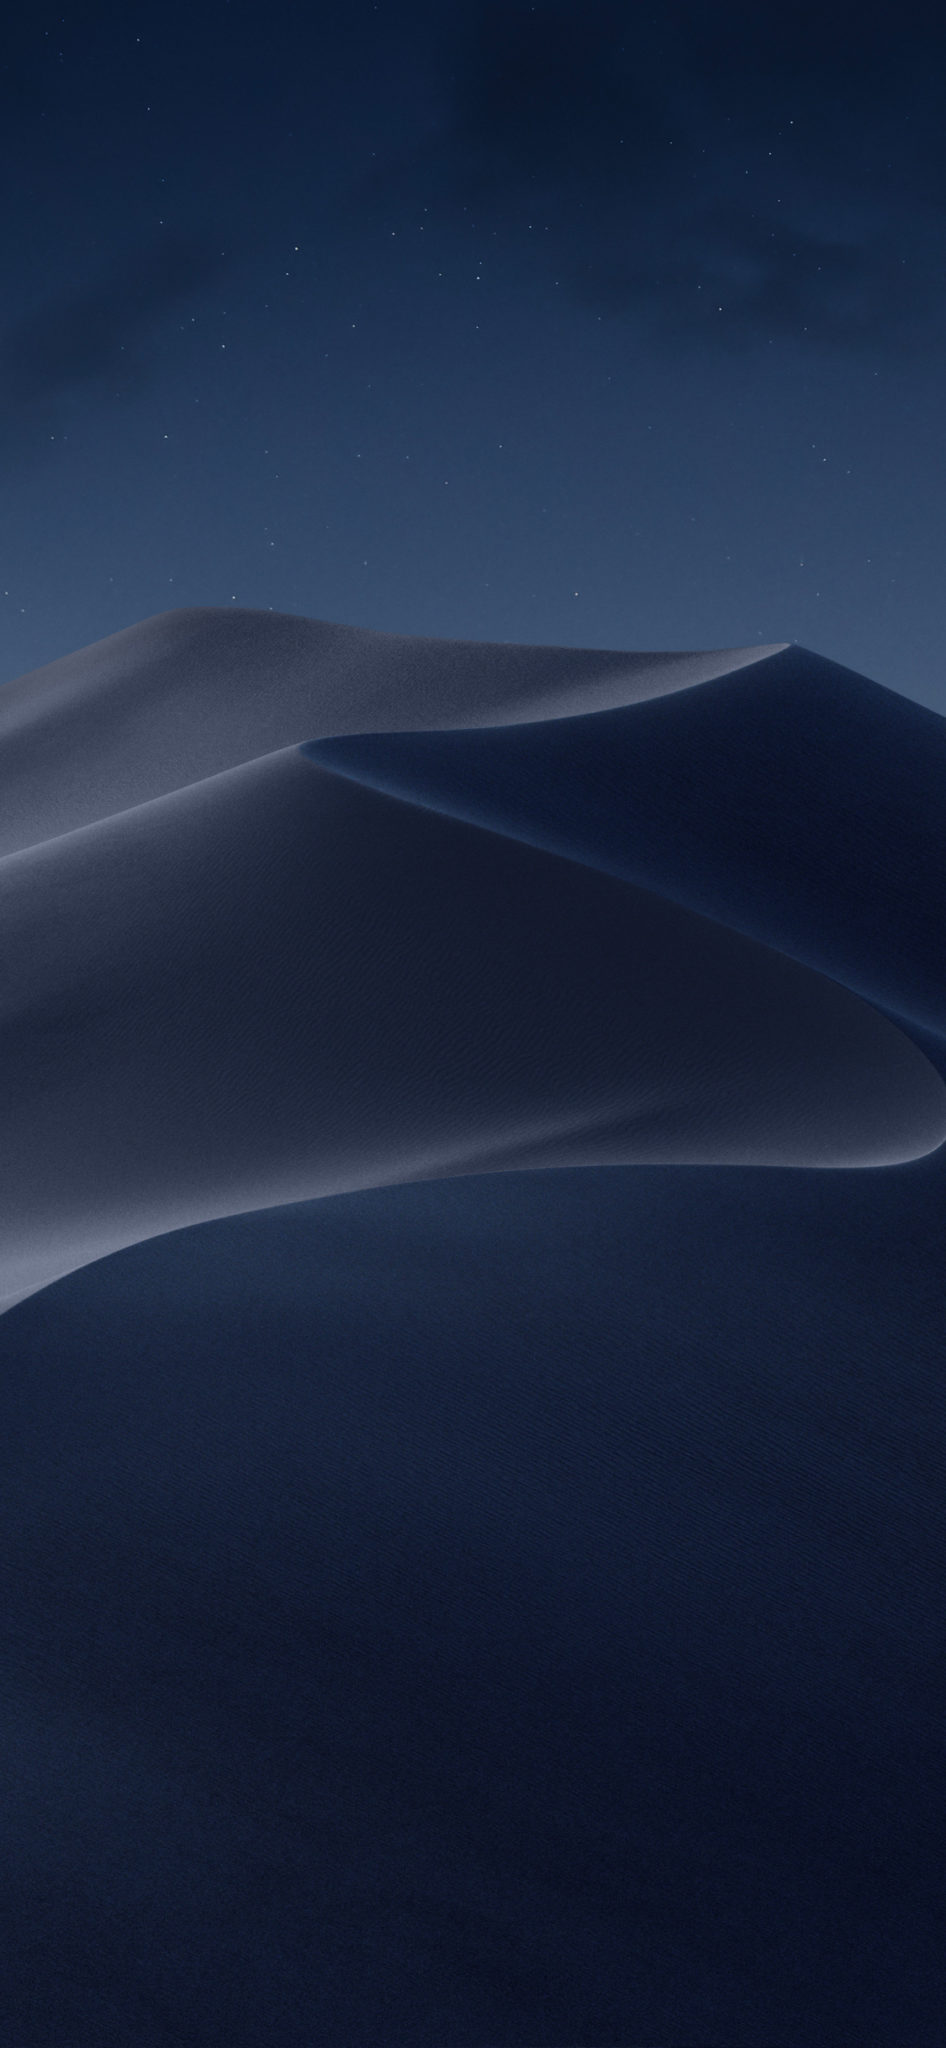 macOS Mojave wallpapers iPhone 1